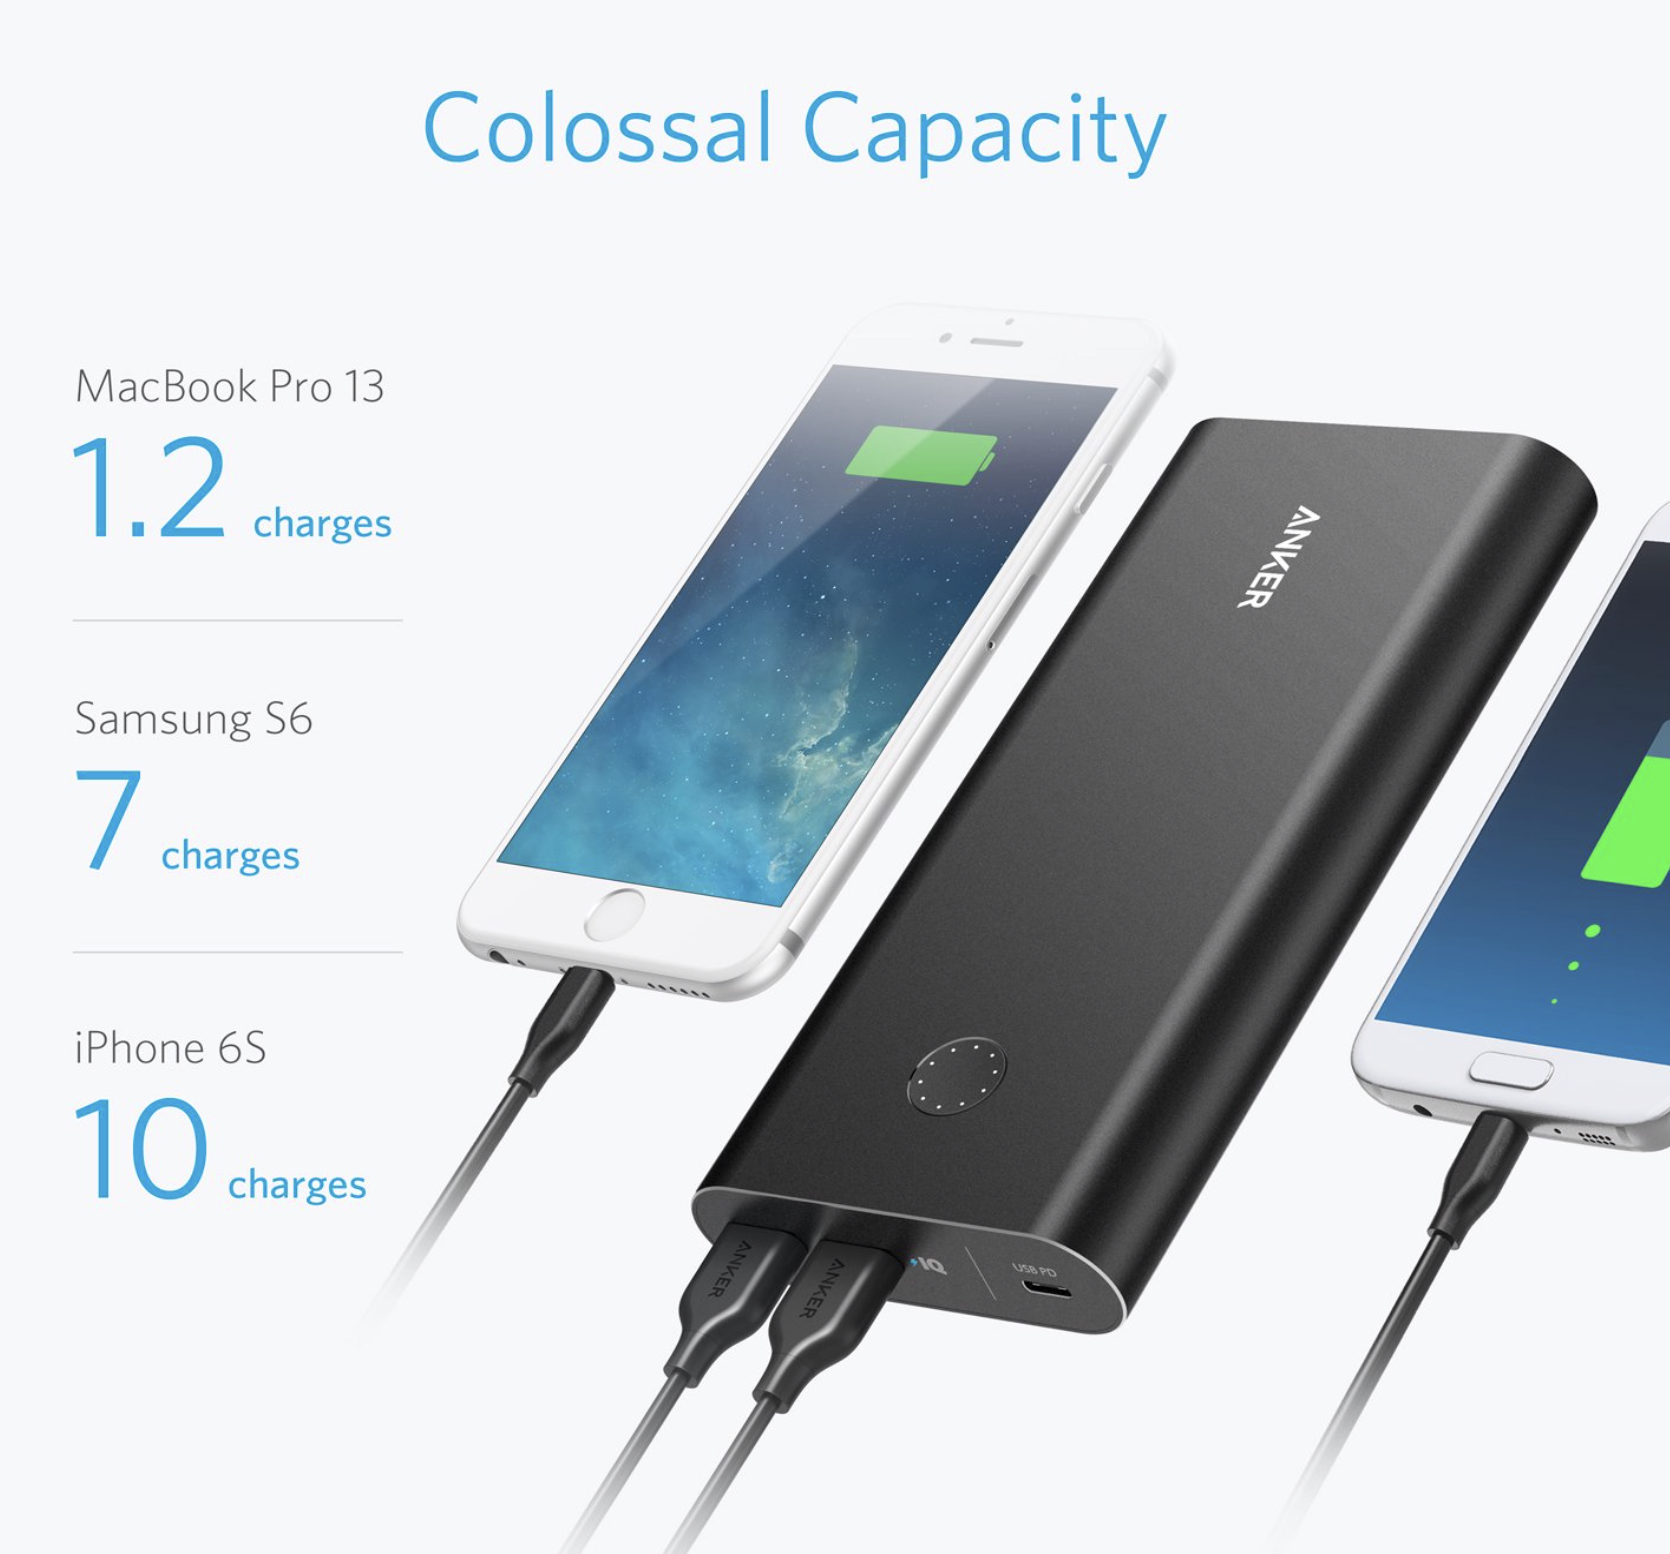 Anker 26,000mAH Portable External Battery  - Ultra-High Capacity that can charge your USB C MacBook as well as phones, gps units, etc. many times over.